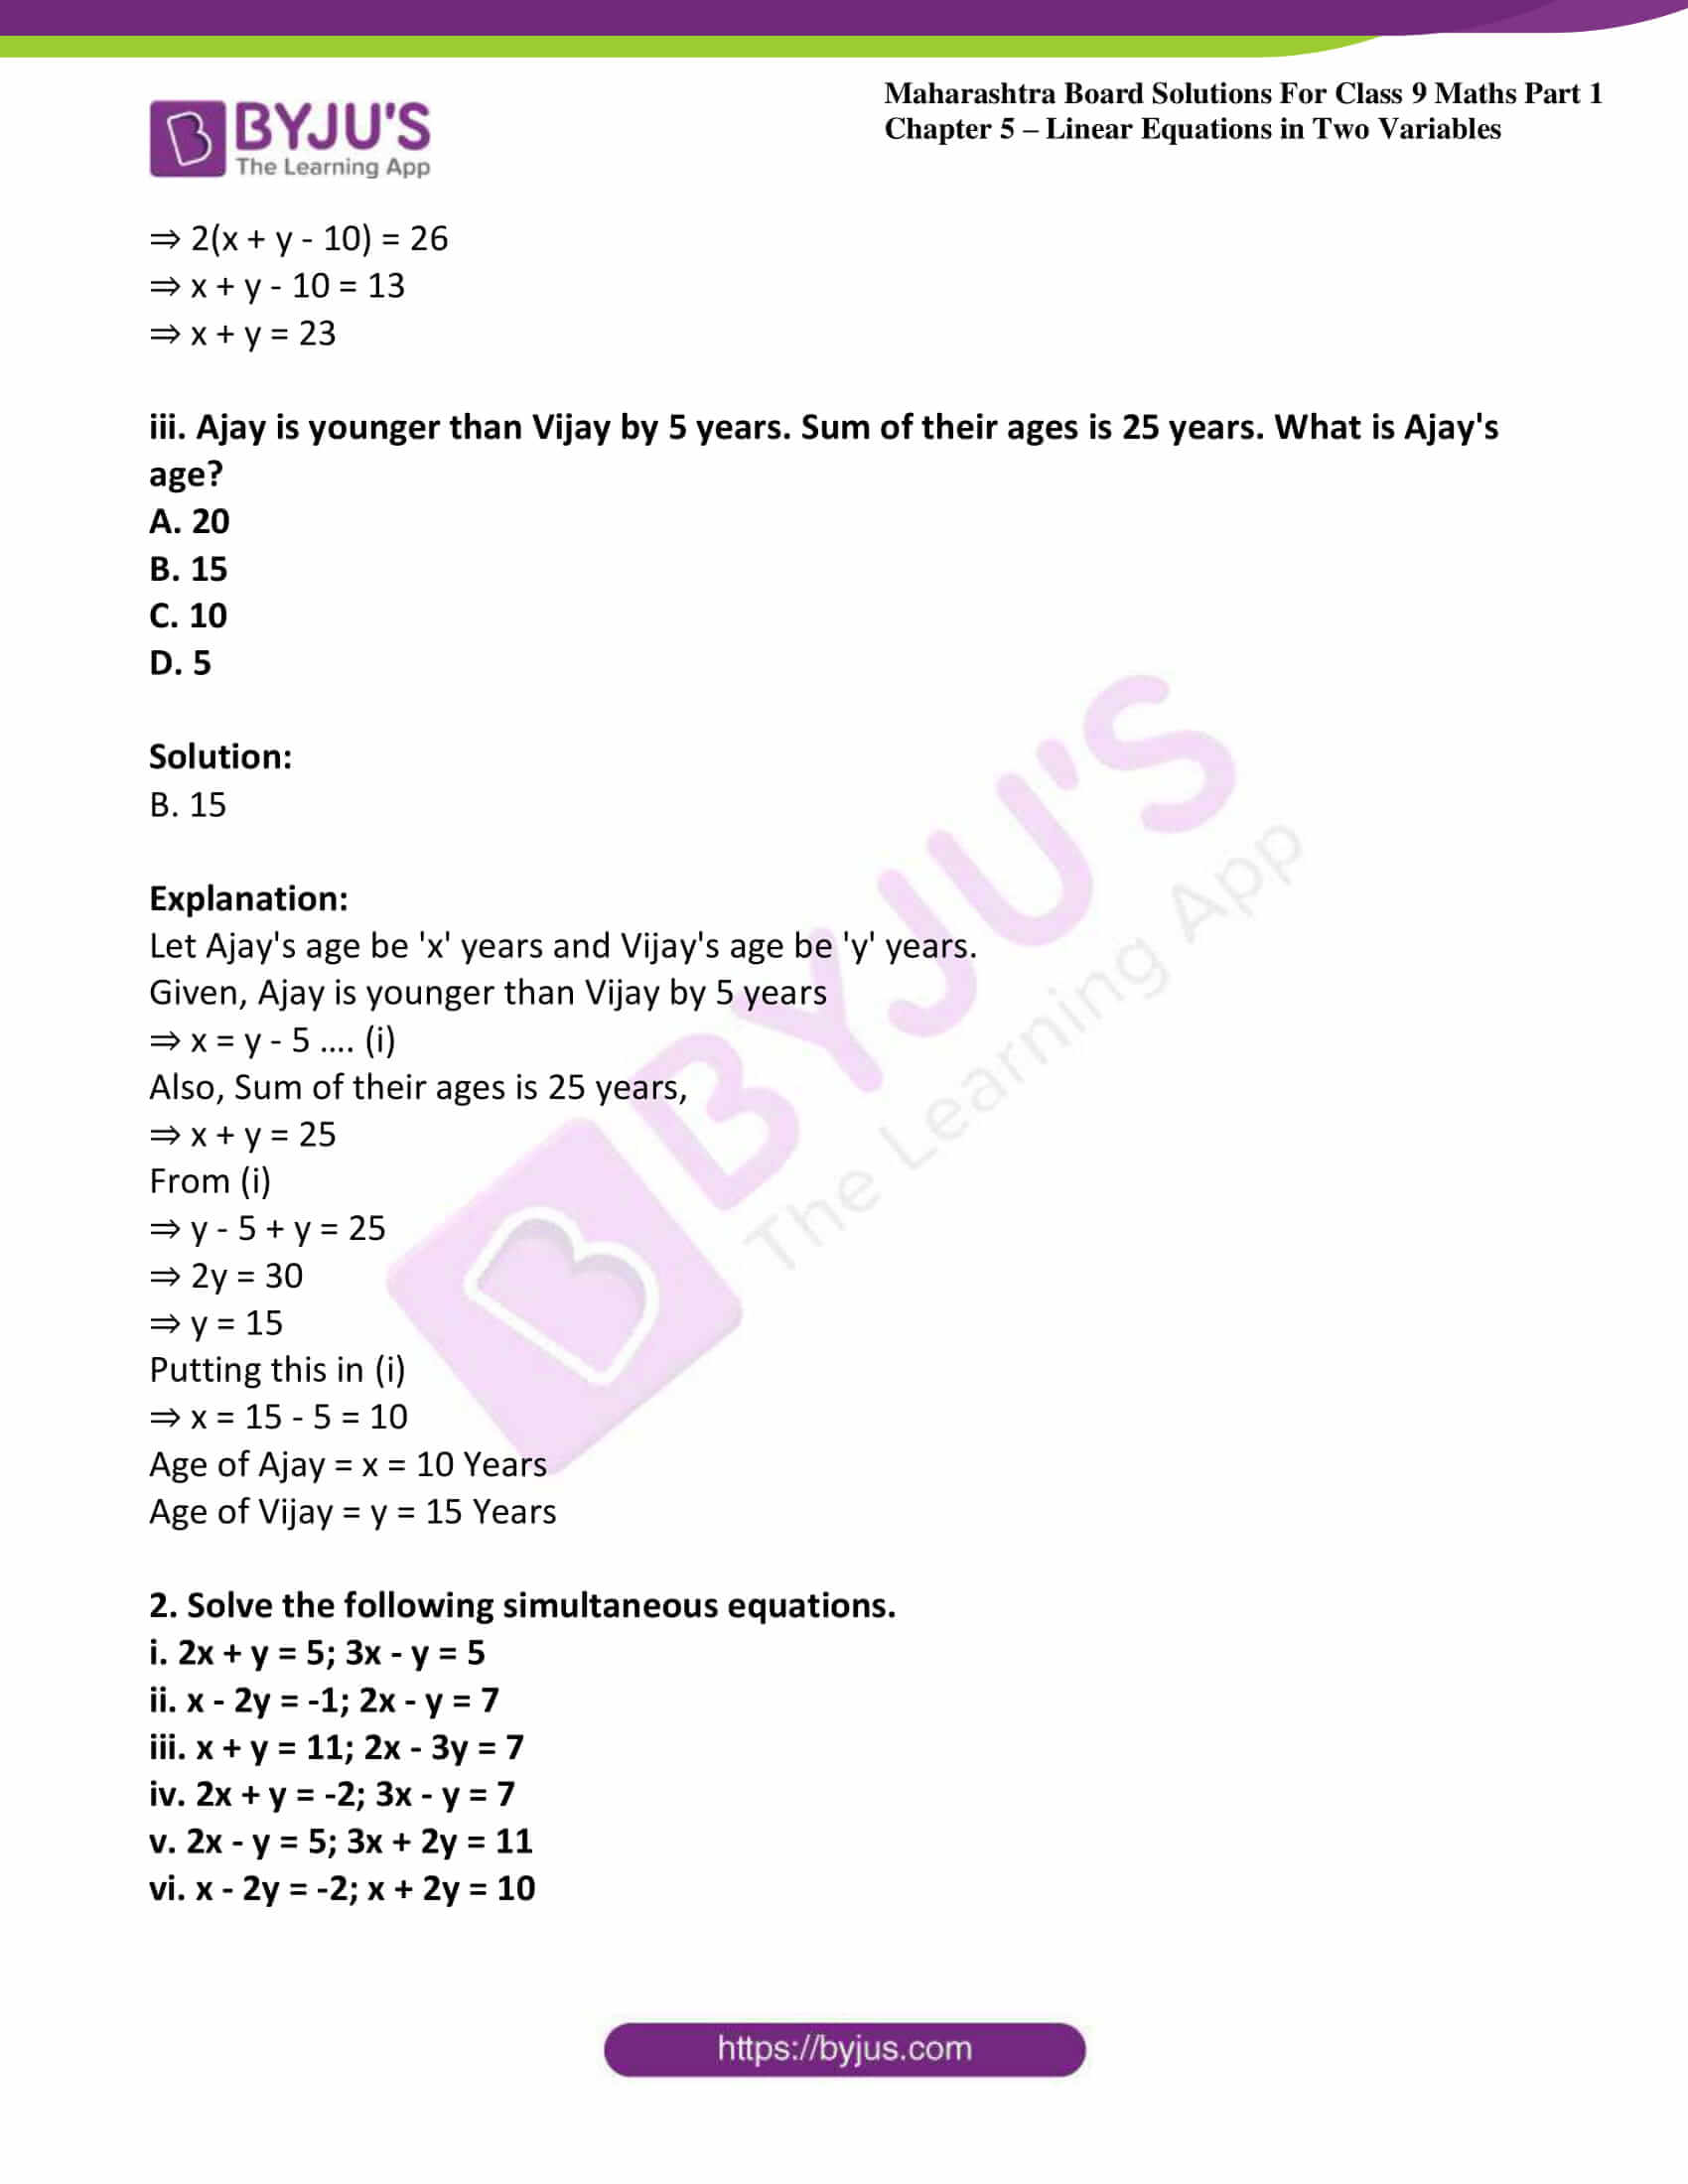 msbshse sol class 9 maths part 1 chapter 5 linear equations in two variables 14